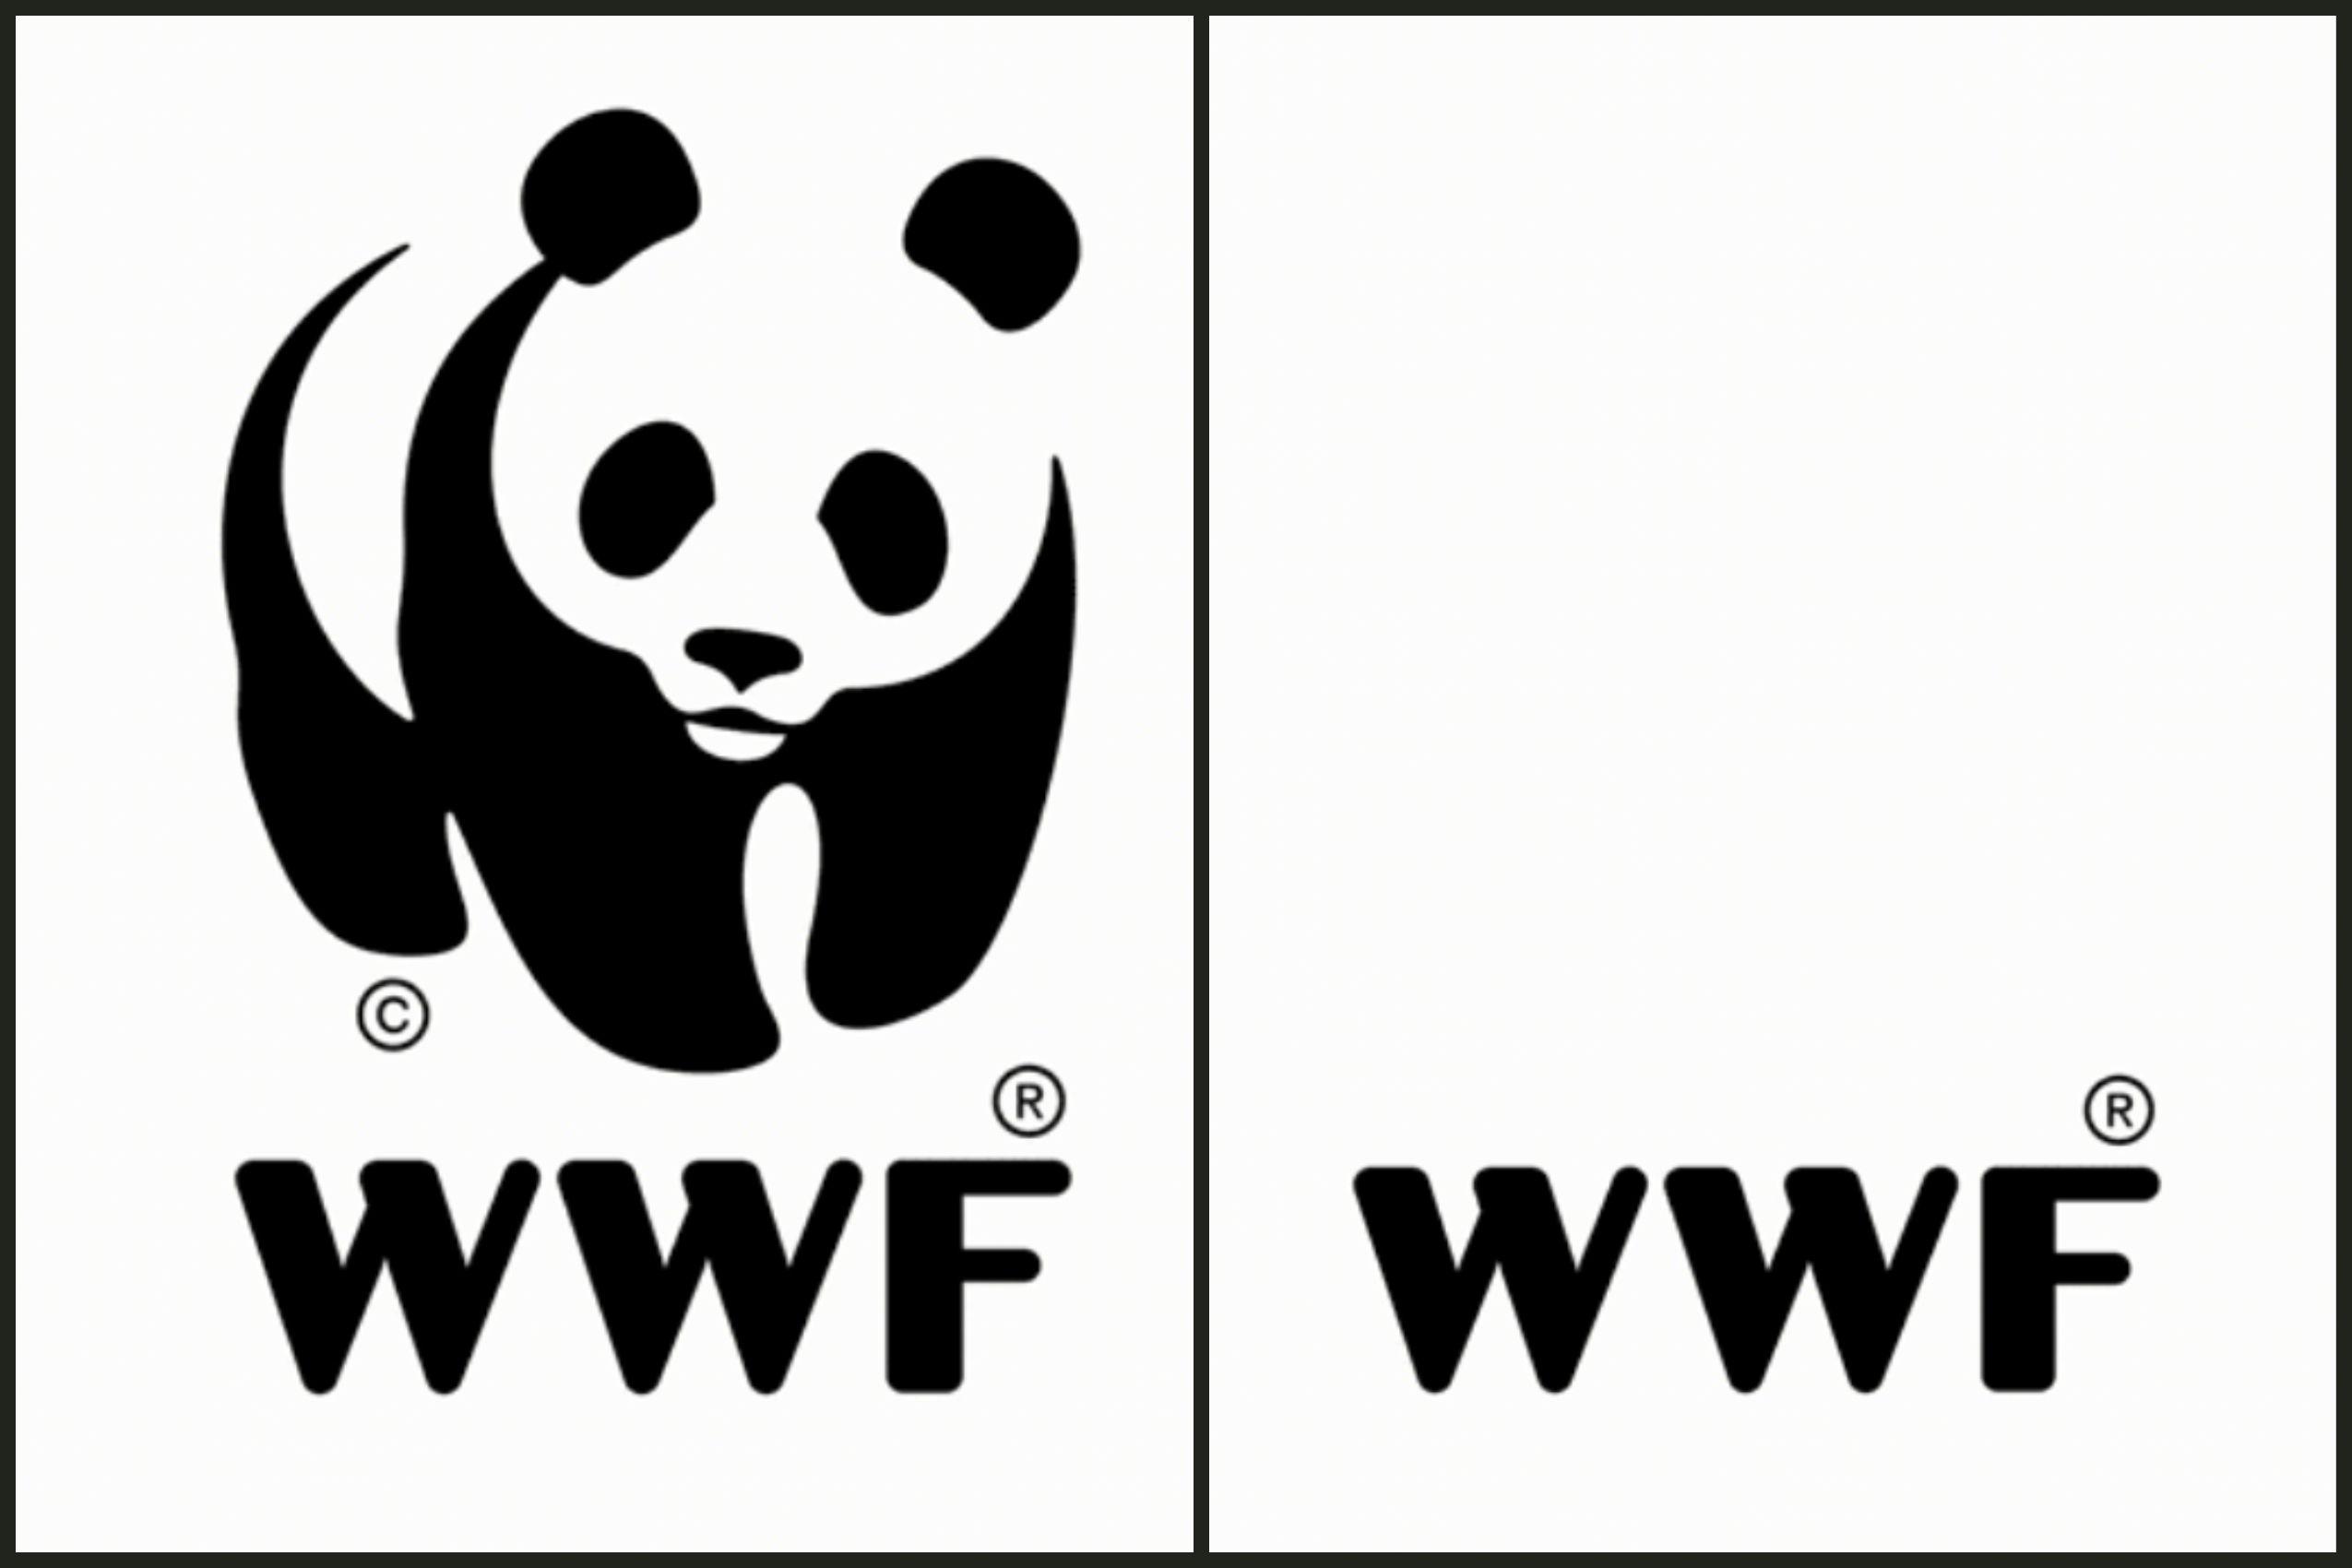 WWFF logo with and without panda